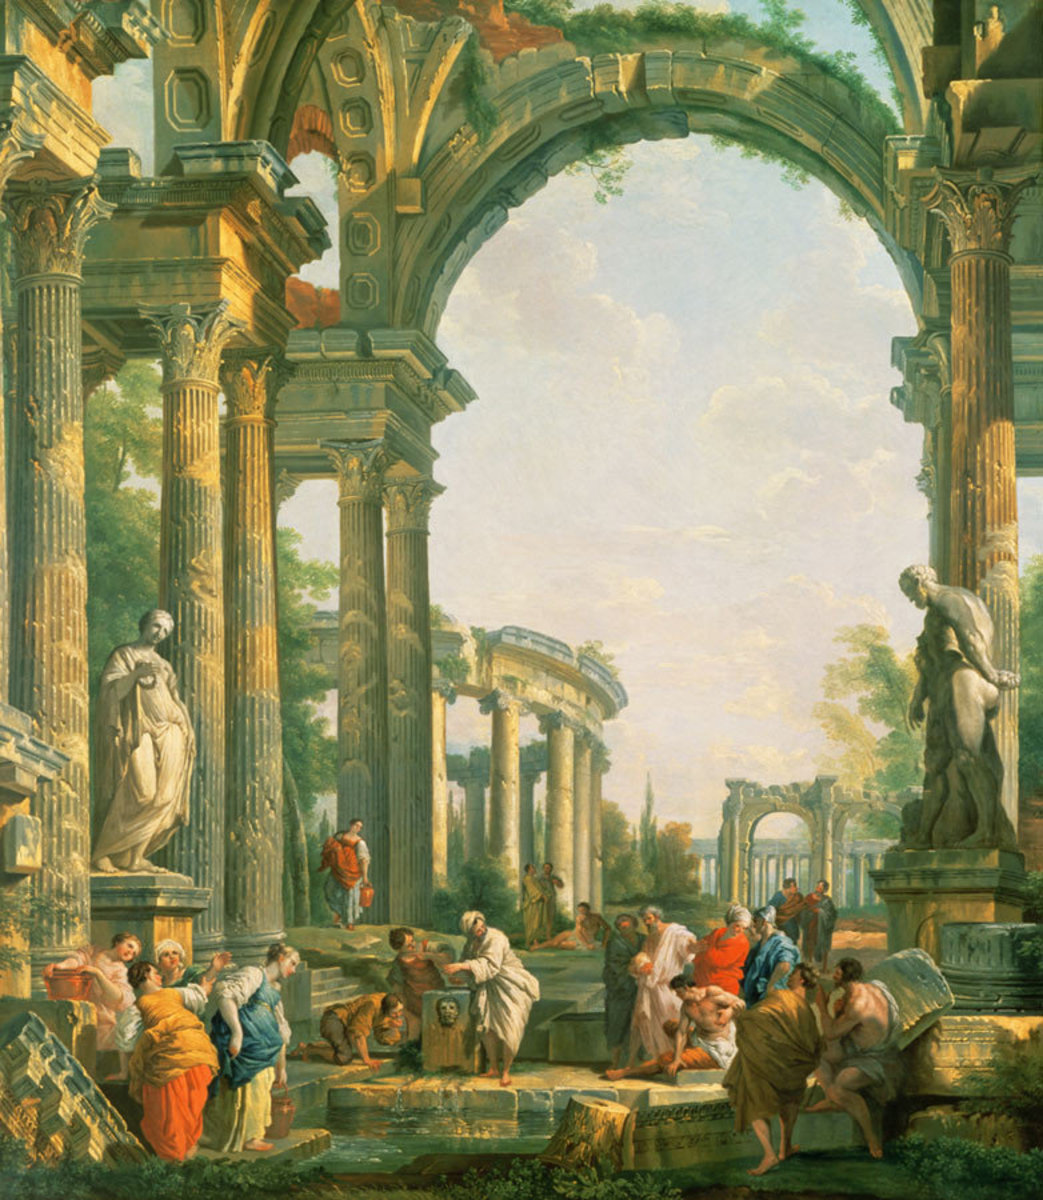 Famous art or painting by Giovanni Pannini of roman ruins with ancient temples